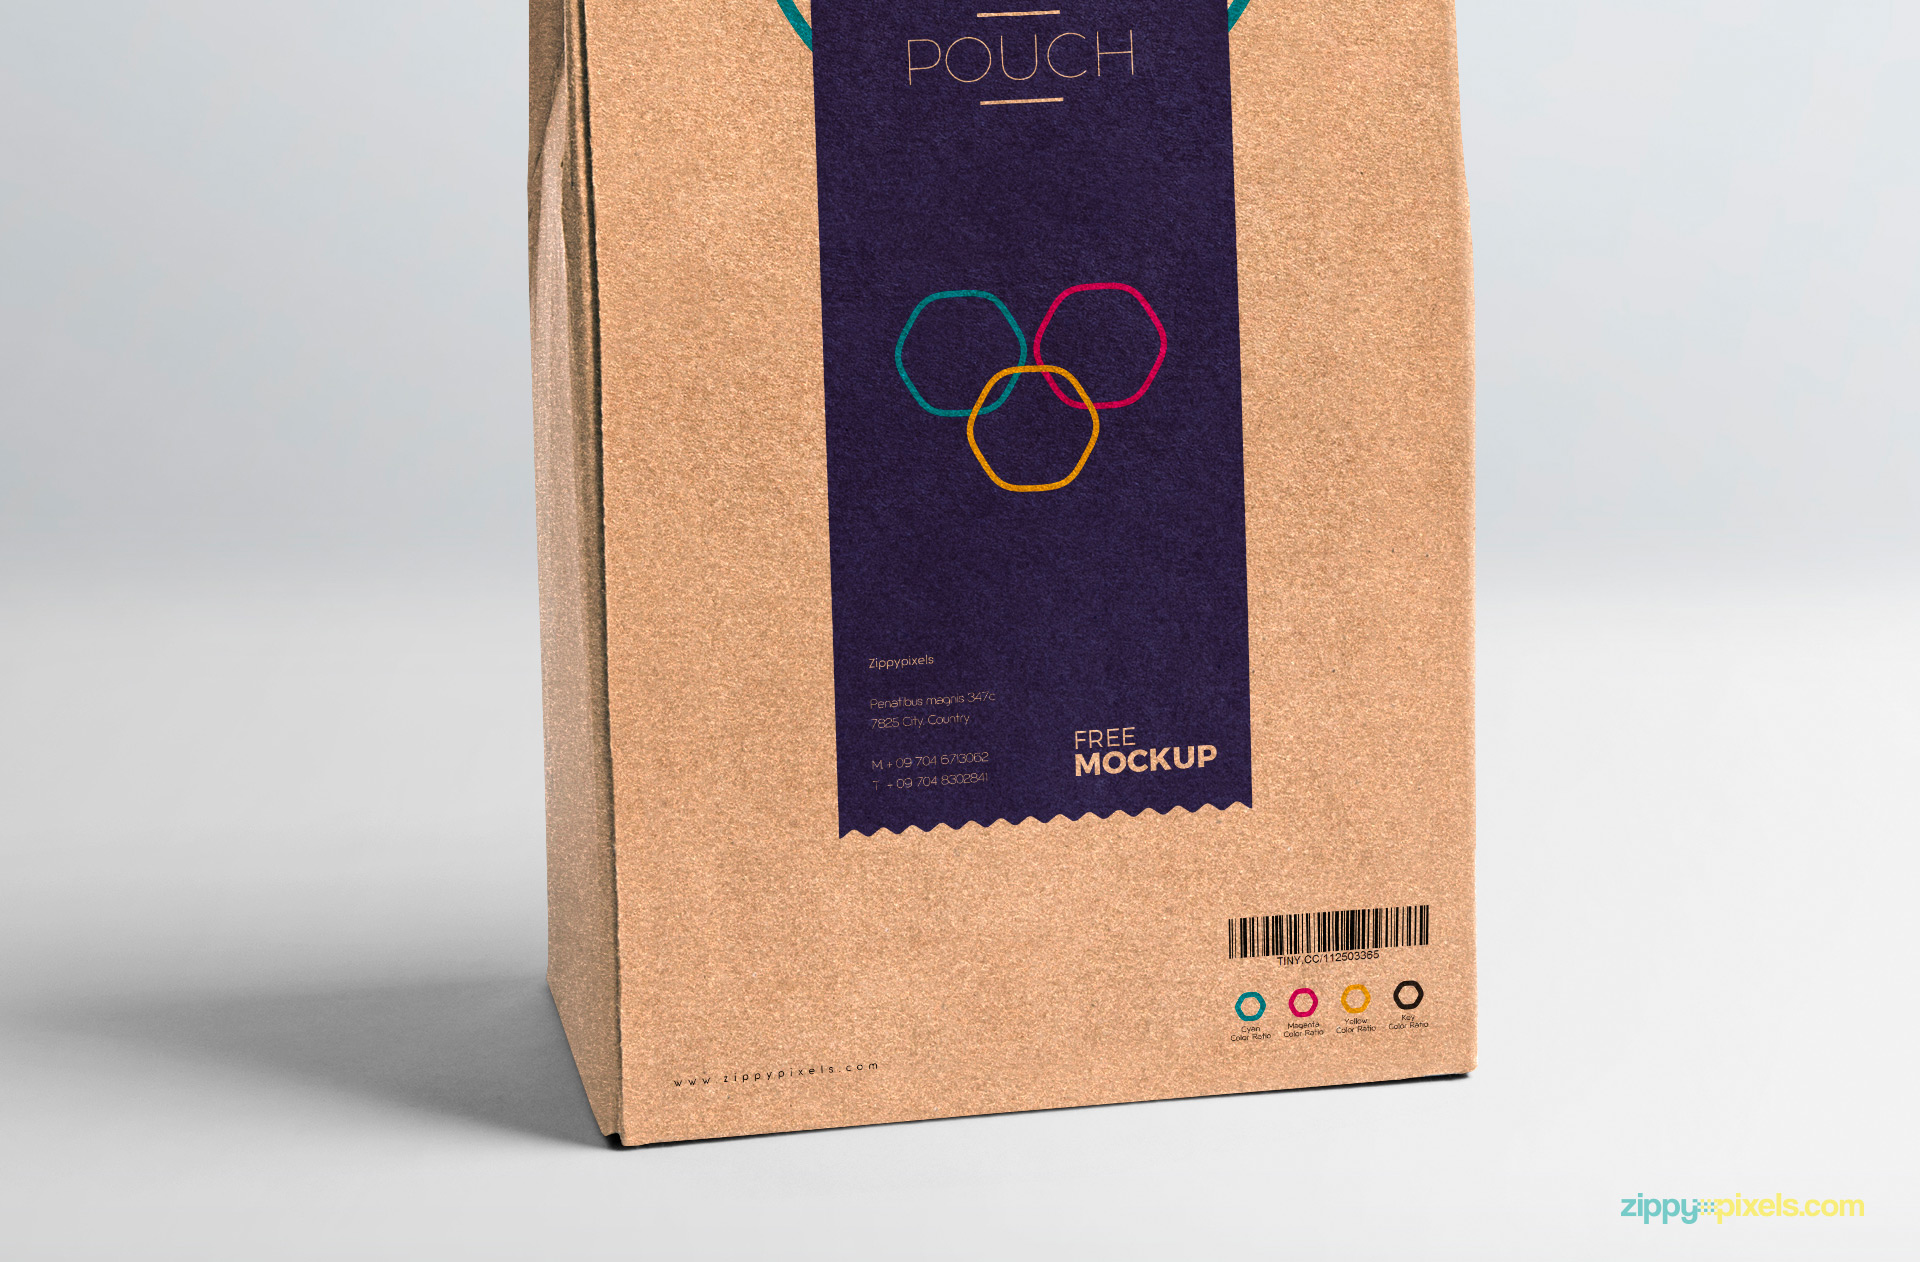 Shadows of pouch packaging is also adjustable.